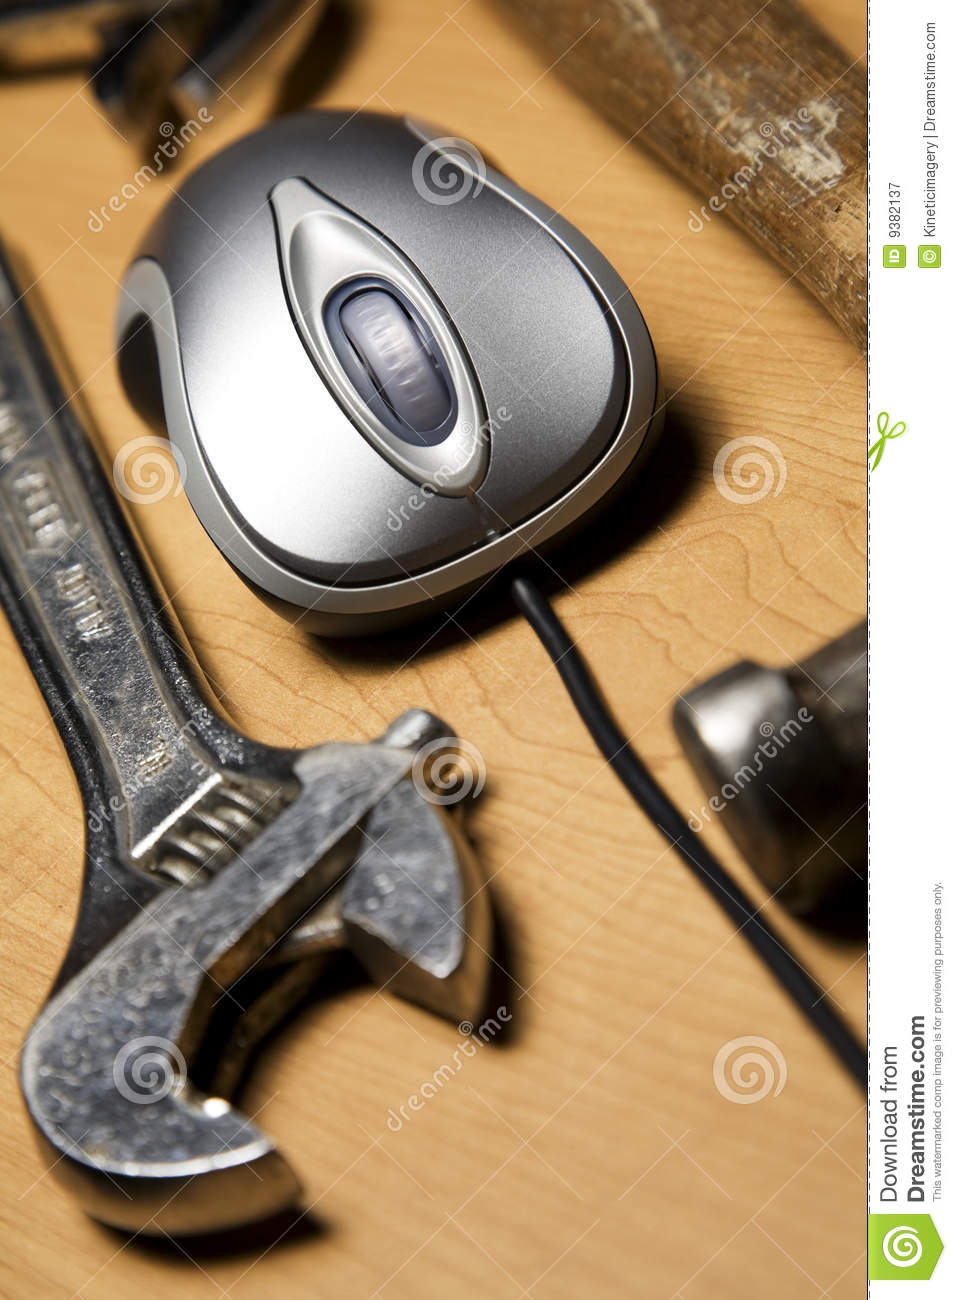 Computer mouse and tools